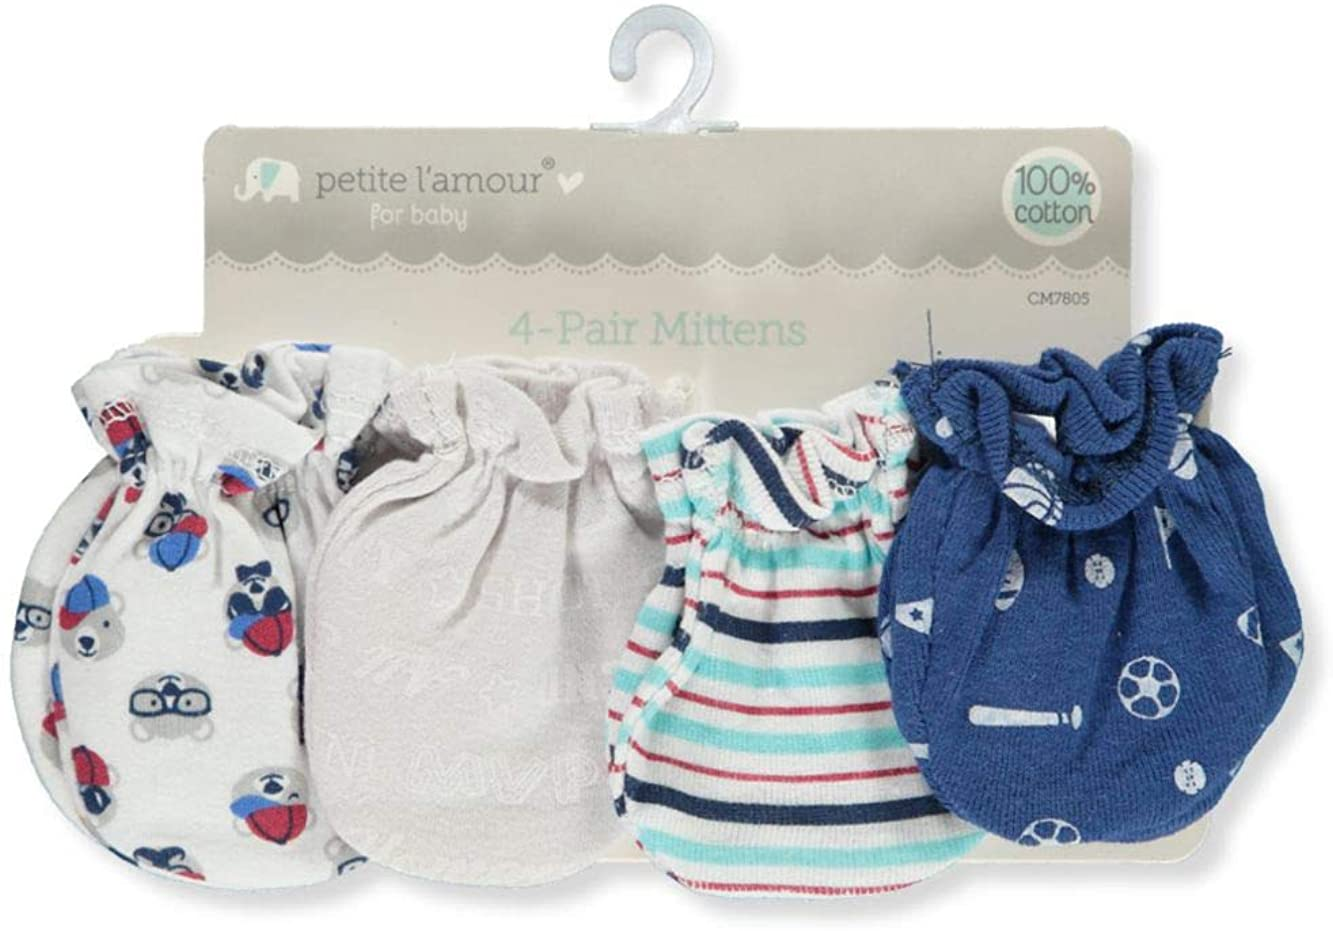 Petite L'amour Baby Boys' 4-Pack Mittens